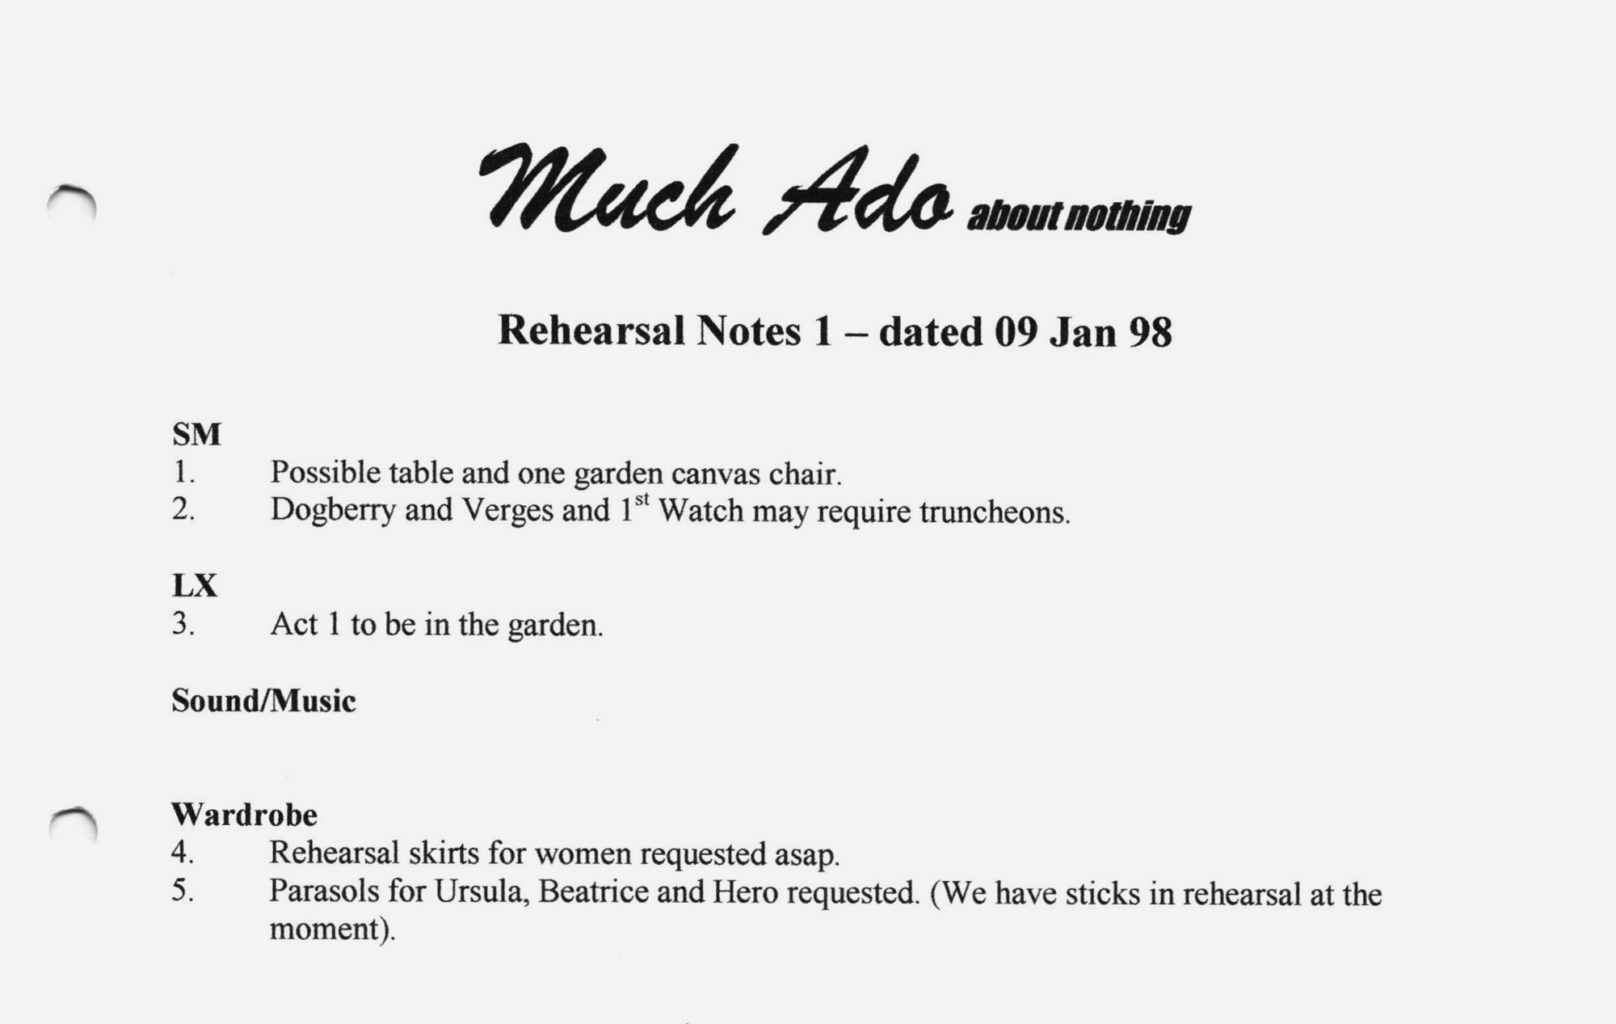 The Rehearsal notes from Cheek by Jowl's 1998 production Much Ado About Nothing